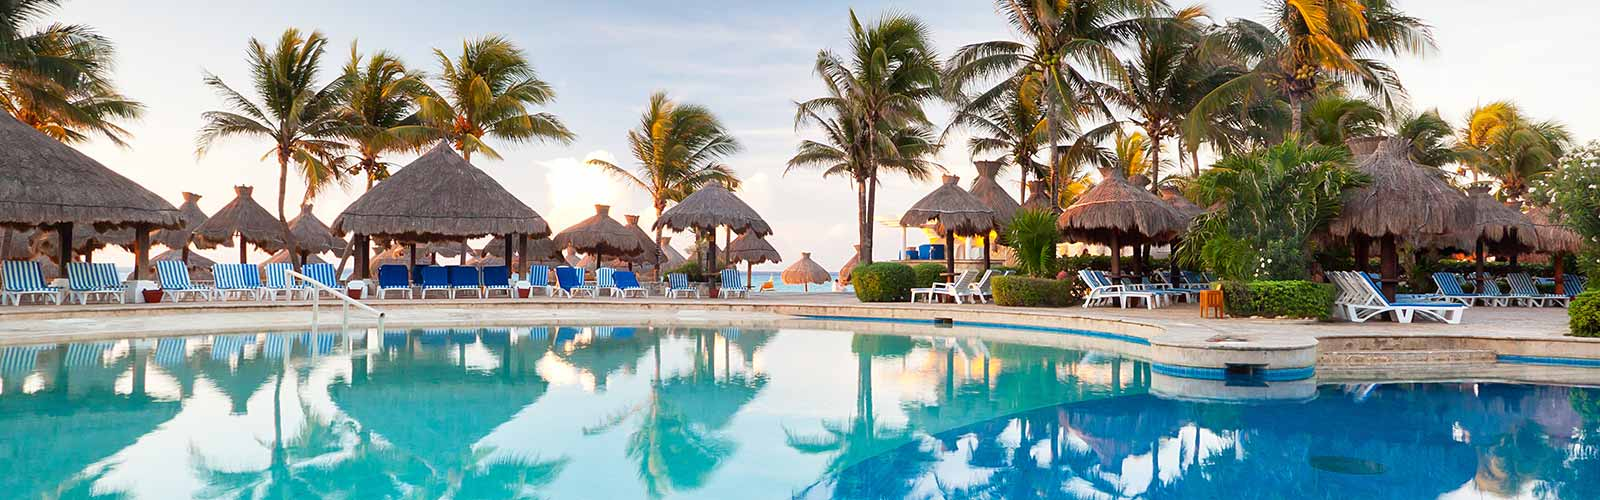 Hotel sandos cancun luxury experience resort marf travel vacation - Vacation Packages Find Cheap Trips Deals Vacations Plane Tickets From United Vacations